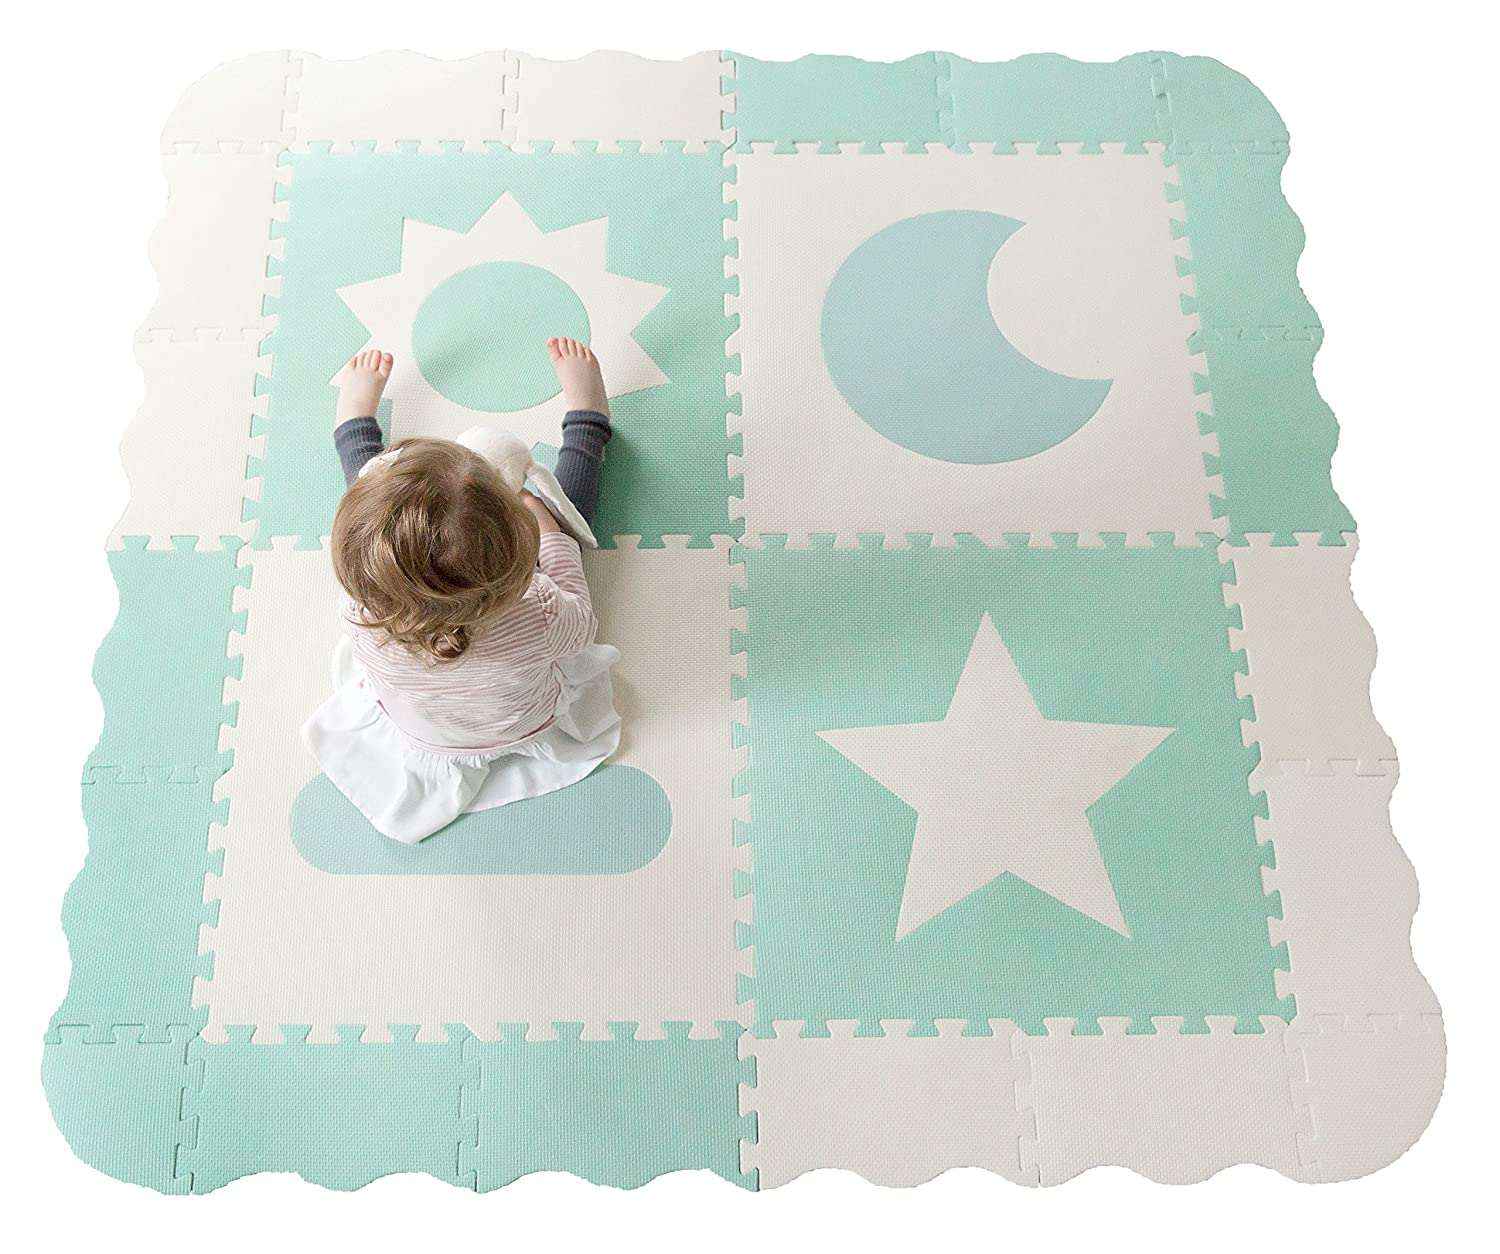 "Interlocking Foam Baby Play Mat Tiles - Non-Toxic, Extra Large Thick Floor Squares, 61"" x 61"" Duck Egg Blue & White Nursery Mat, Safe & Protective For Infants, Toddlers, Kids Childlike Behavior MSBW"